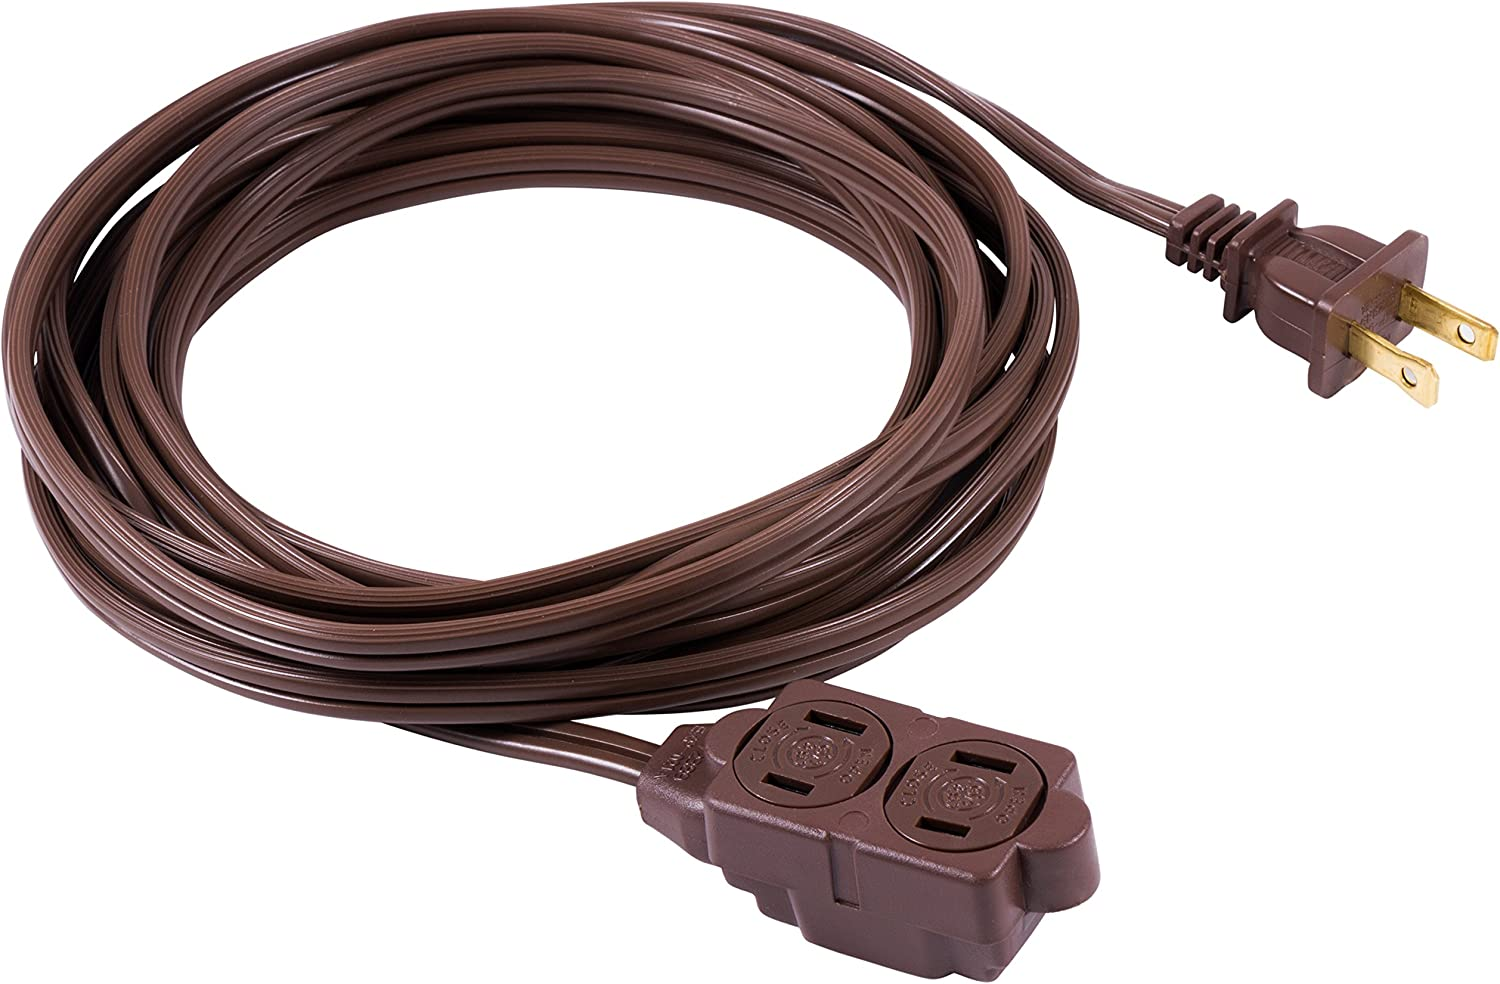 GE 12 Ft Extension Cord, 3 Outlet Power Strip, 2 Prong, 16 Gauge, Twist-to-Close Safety Outlet Covers, Indoor Rated, Perfect for Home, Office or Kitchen, UL Listed, Brown, 51952